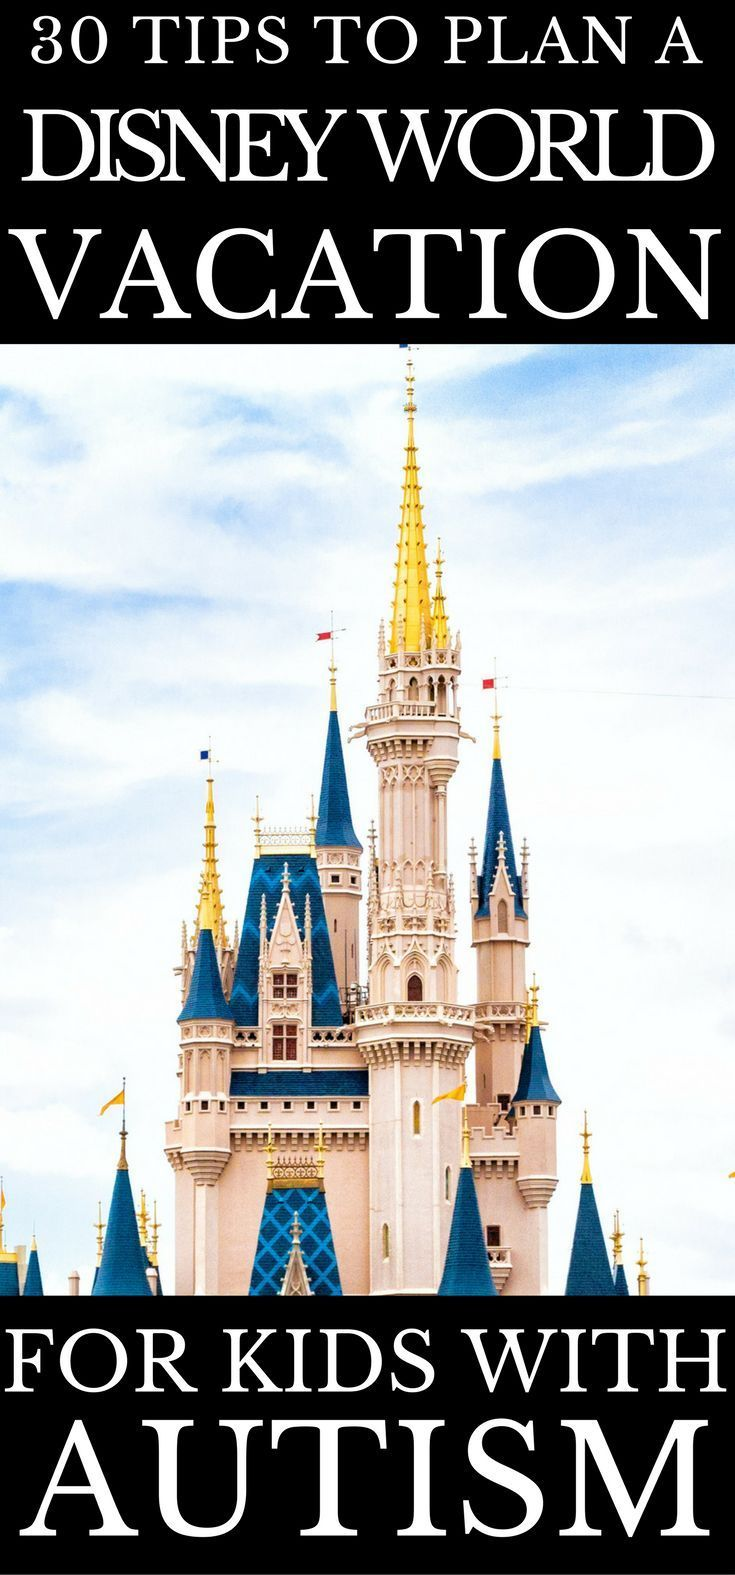 Planning a trip to Disney World requires time and patience for every family, but when you have a child with autism or special needs it takes considerably more effort. I've put together this list of over 30 travel tips to help you pack, plan, and schedule your trip to Disney World with your child with autism. I've taken my son who has autism to Disney World twice and I have picked up some great info you need to know before you go! #traveltips #parenting #autism #disneyworld